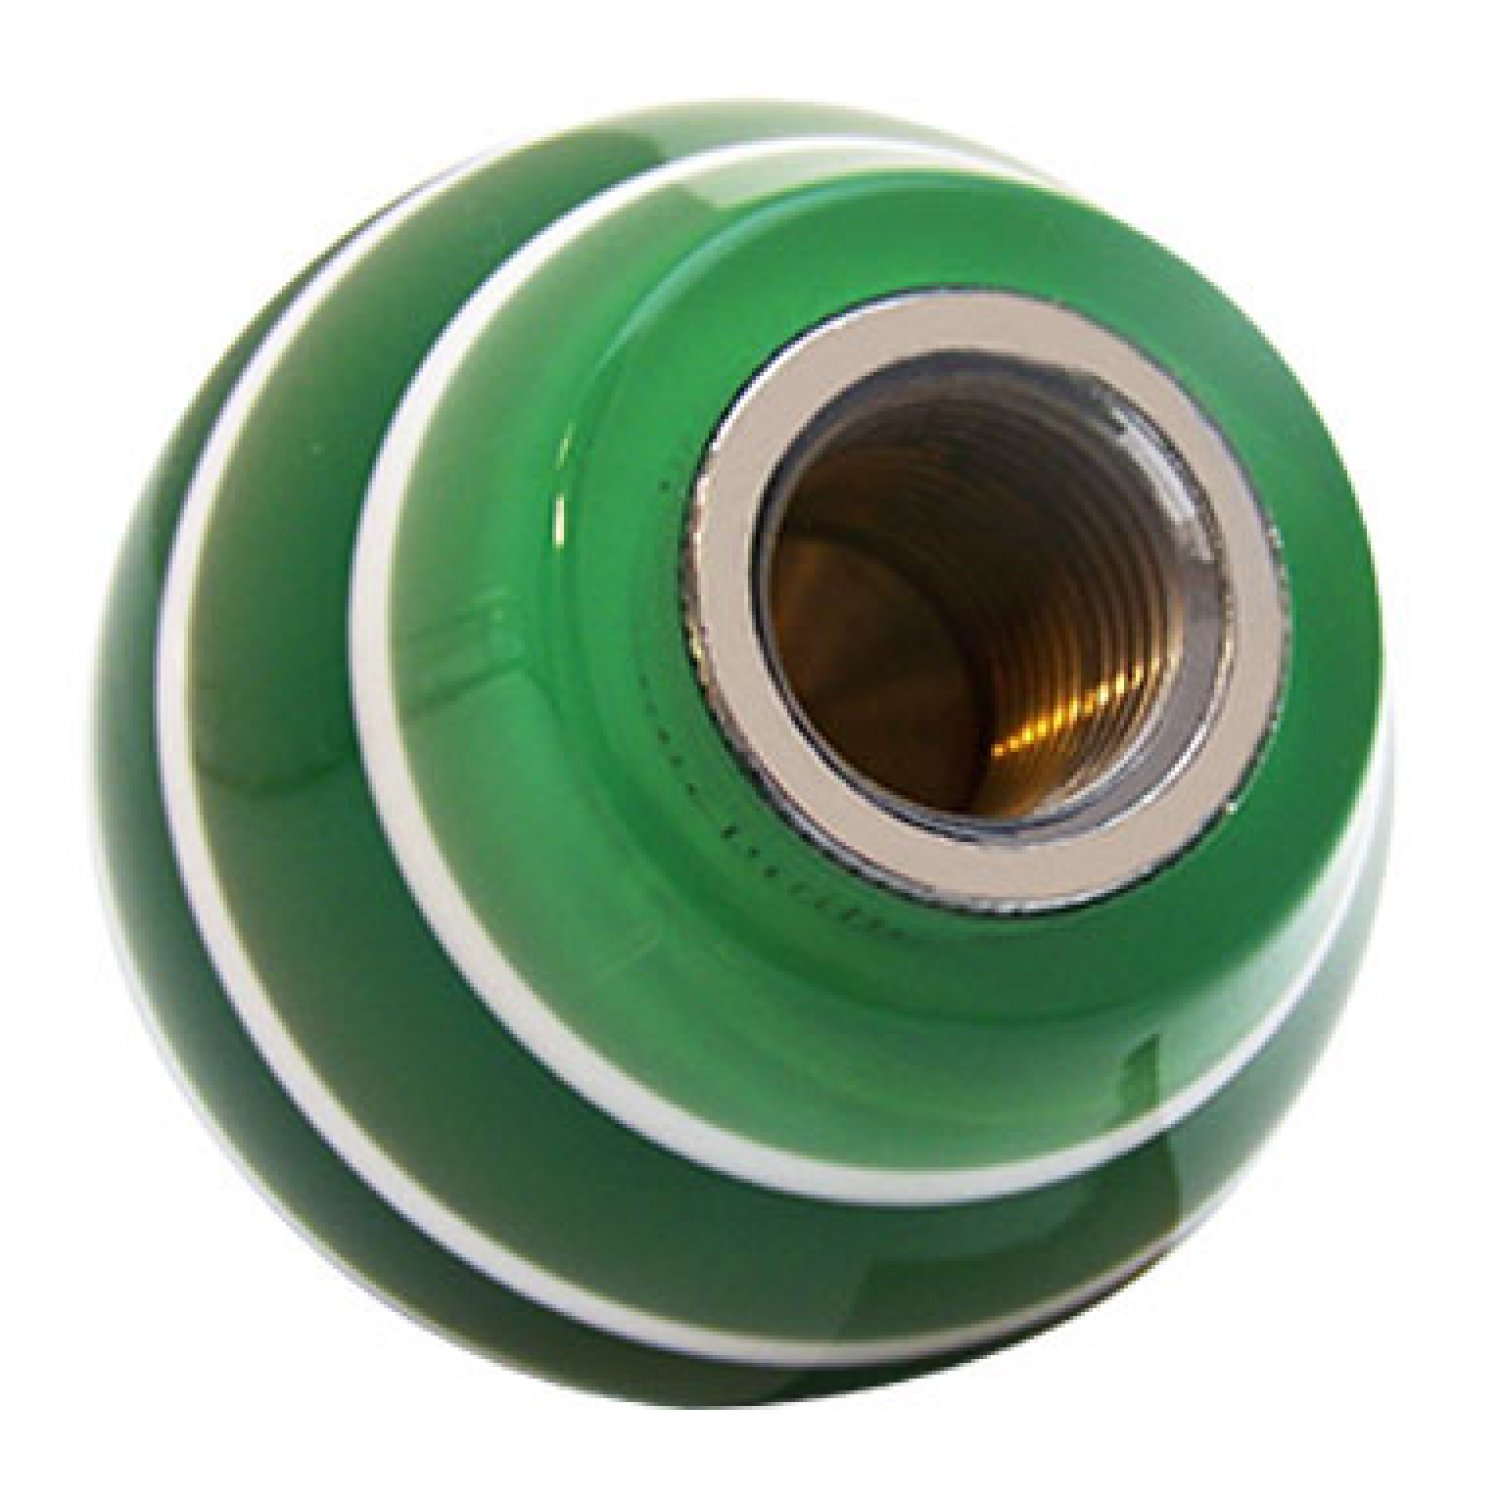 American Shifter 123277 Green Stripe Shift Knob with M16 x 1.5 Insert Yellow Whale Tail